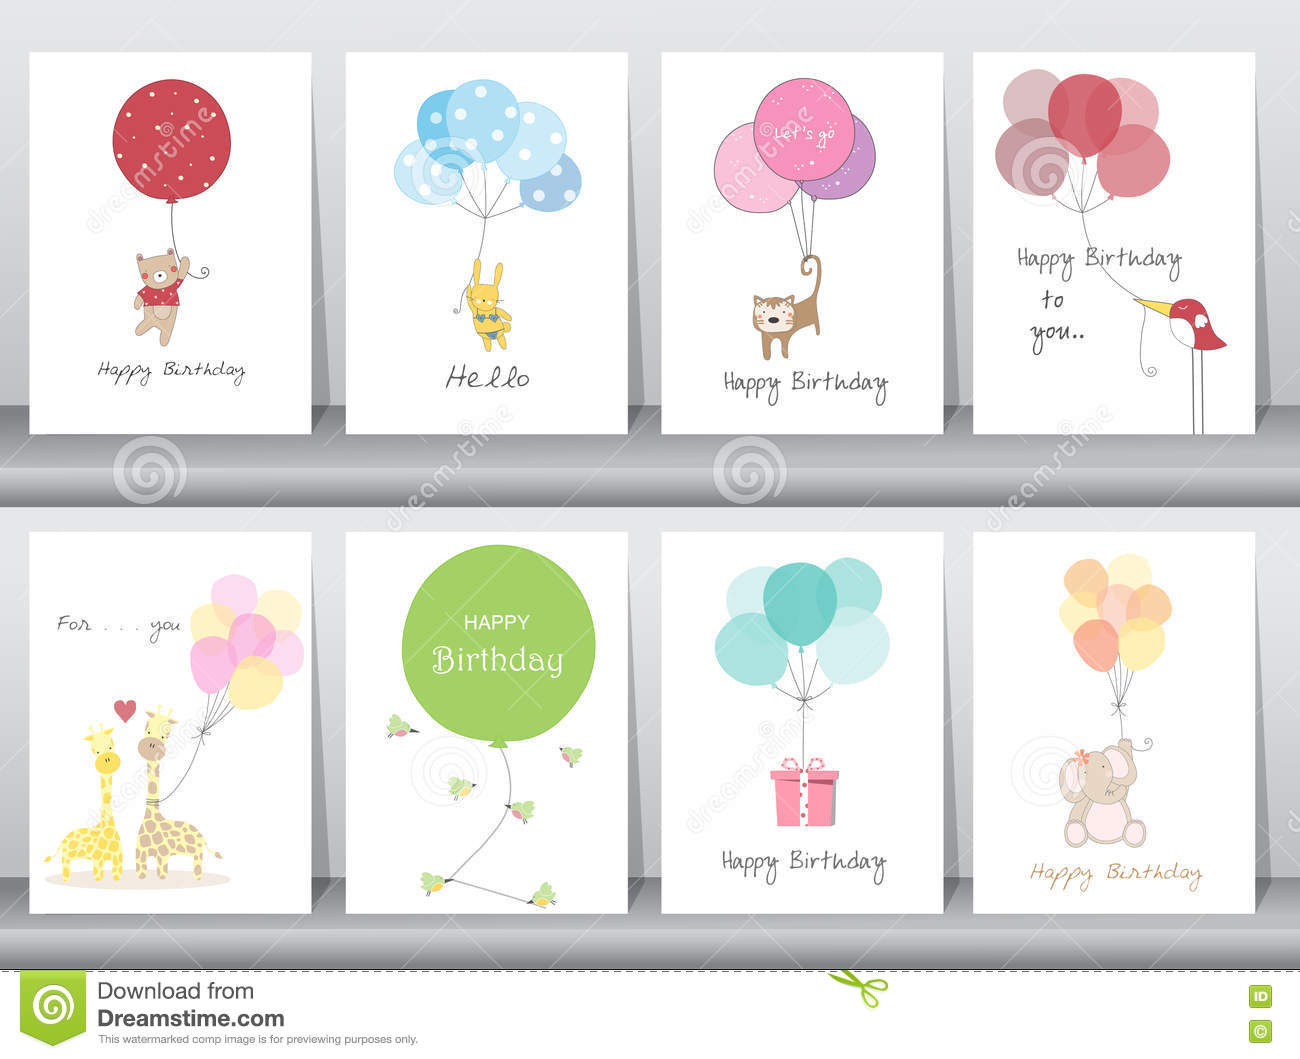 Set Of Birthday Cardspostertemplategreeting Cardssweetballoons